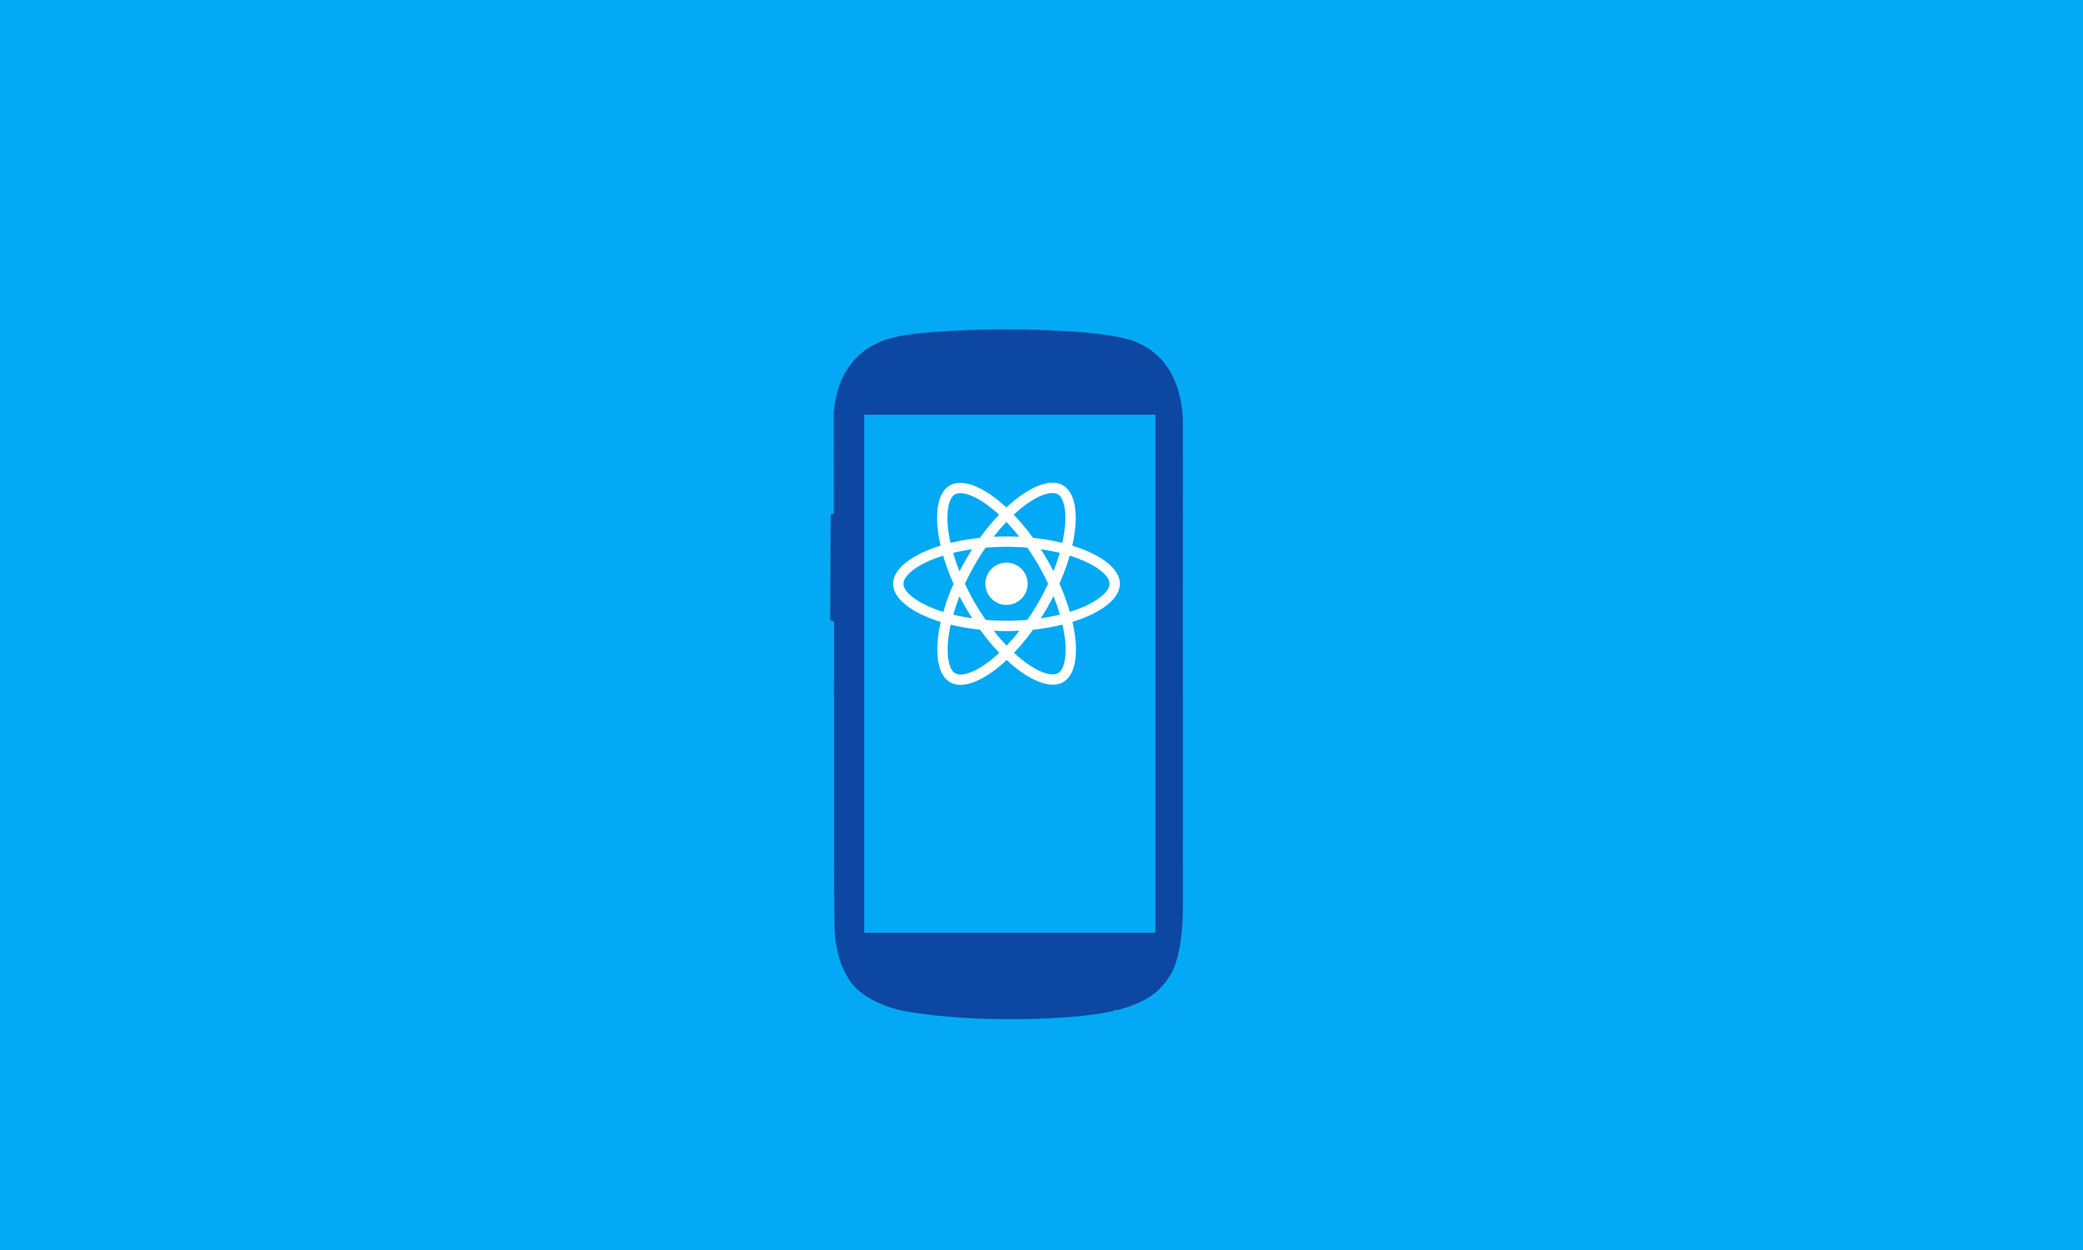 Making React Native apps accessible - Facebook Engineering